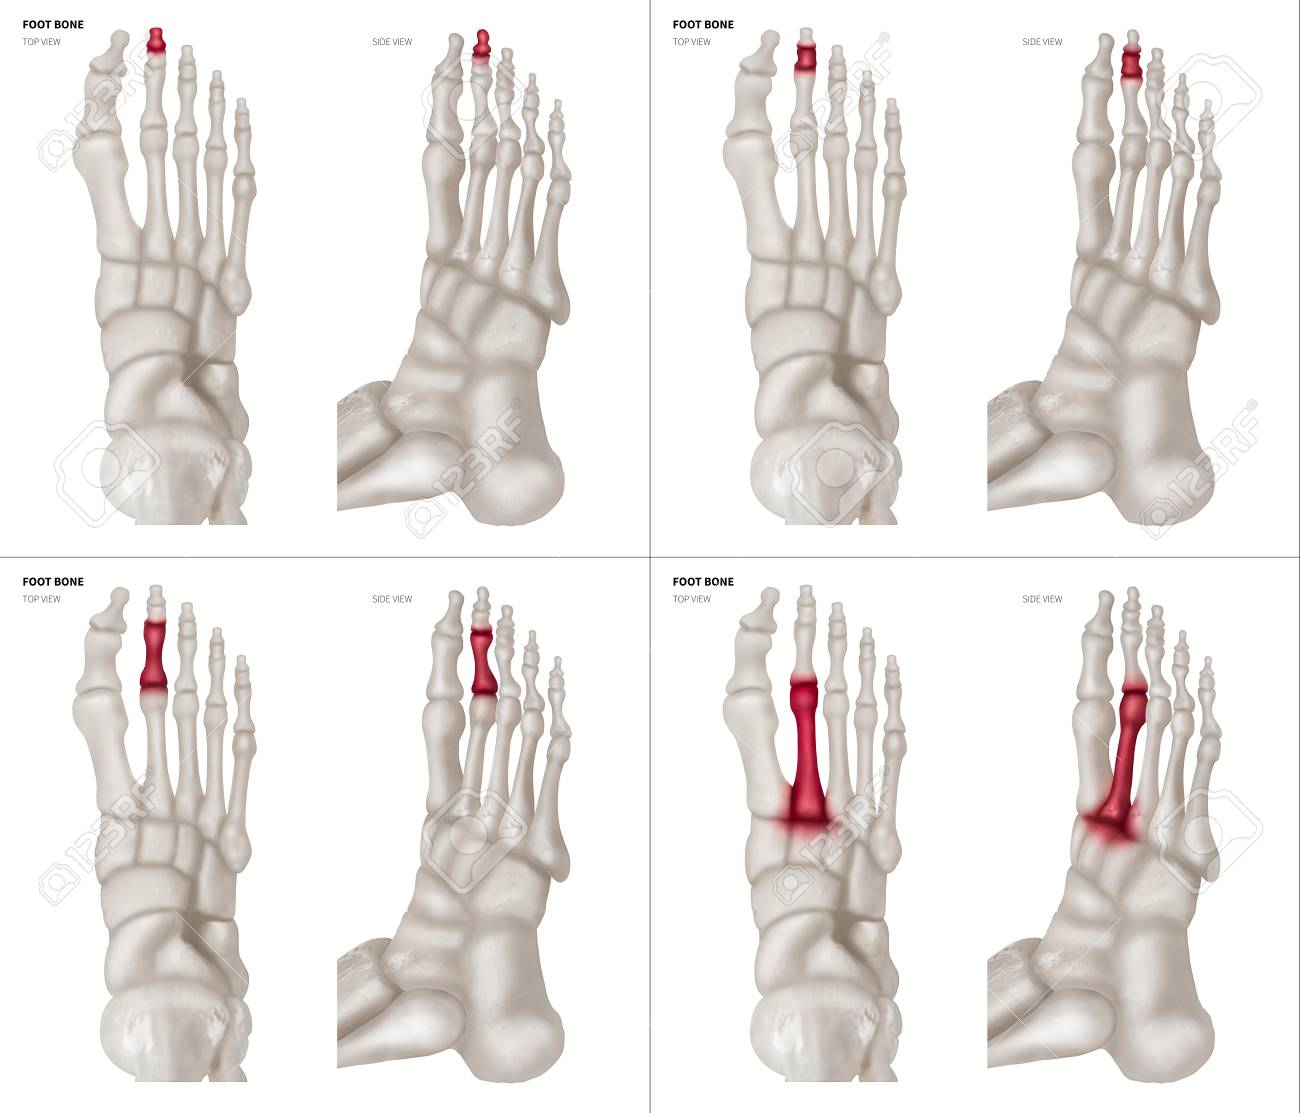 X Ray Collection Of Long Toe Foot Bone With Red Highlights On